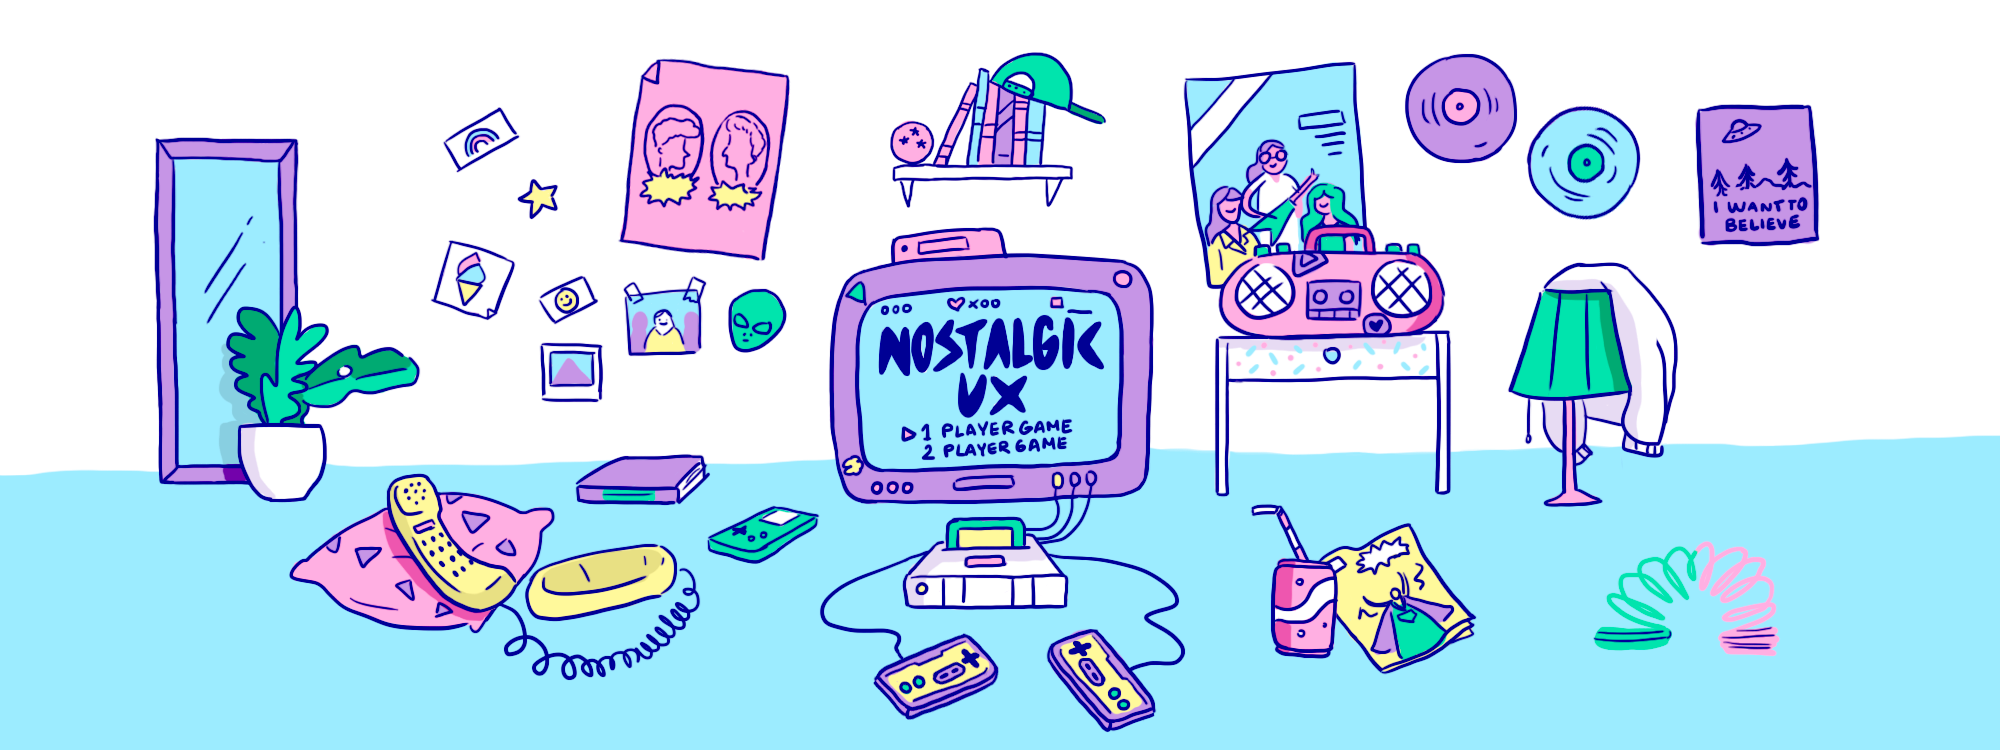 The Power of Nostalgia